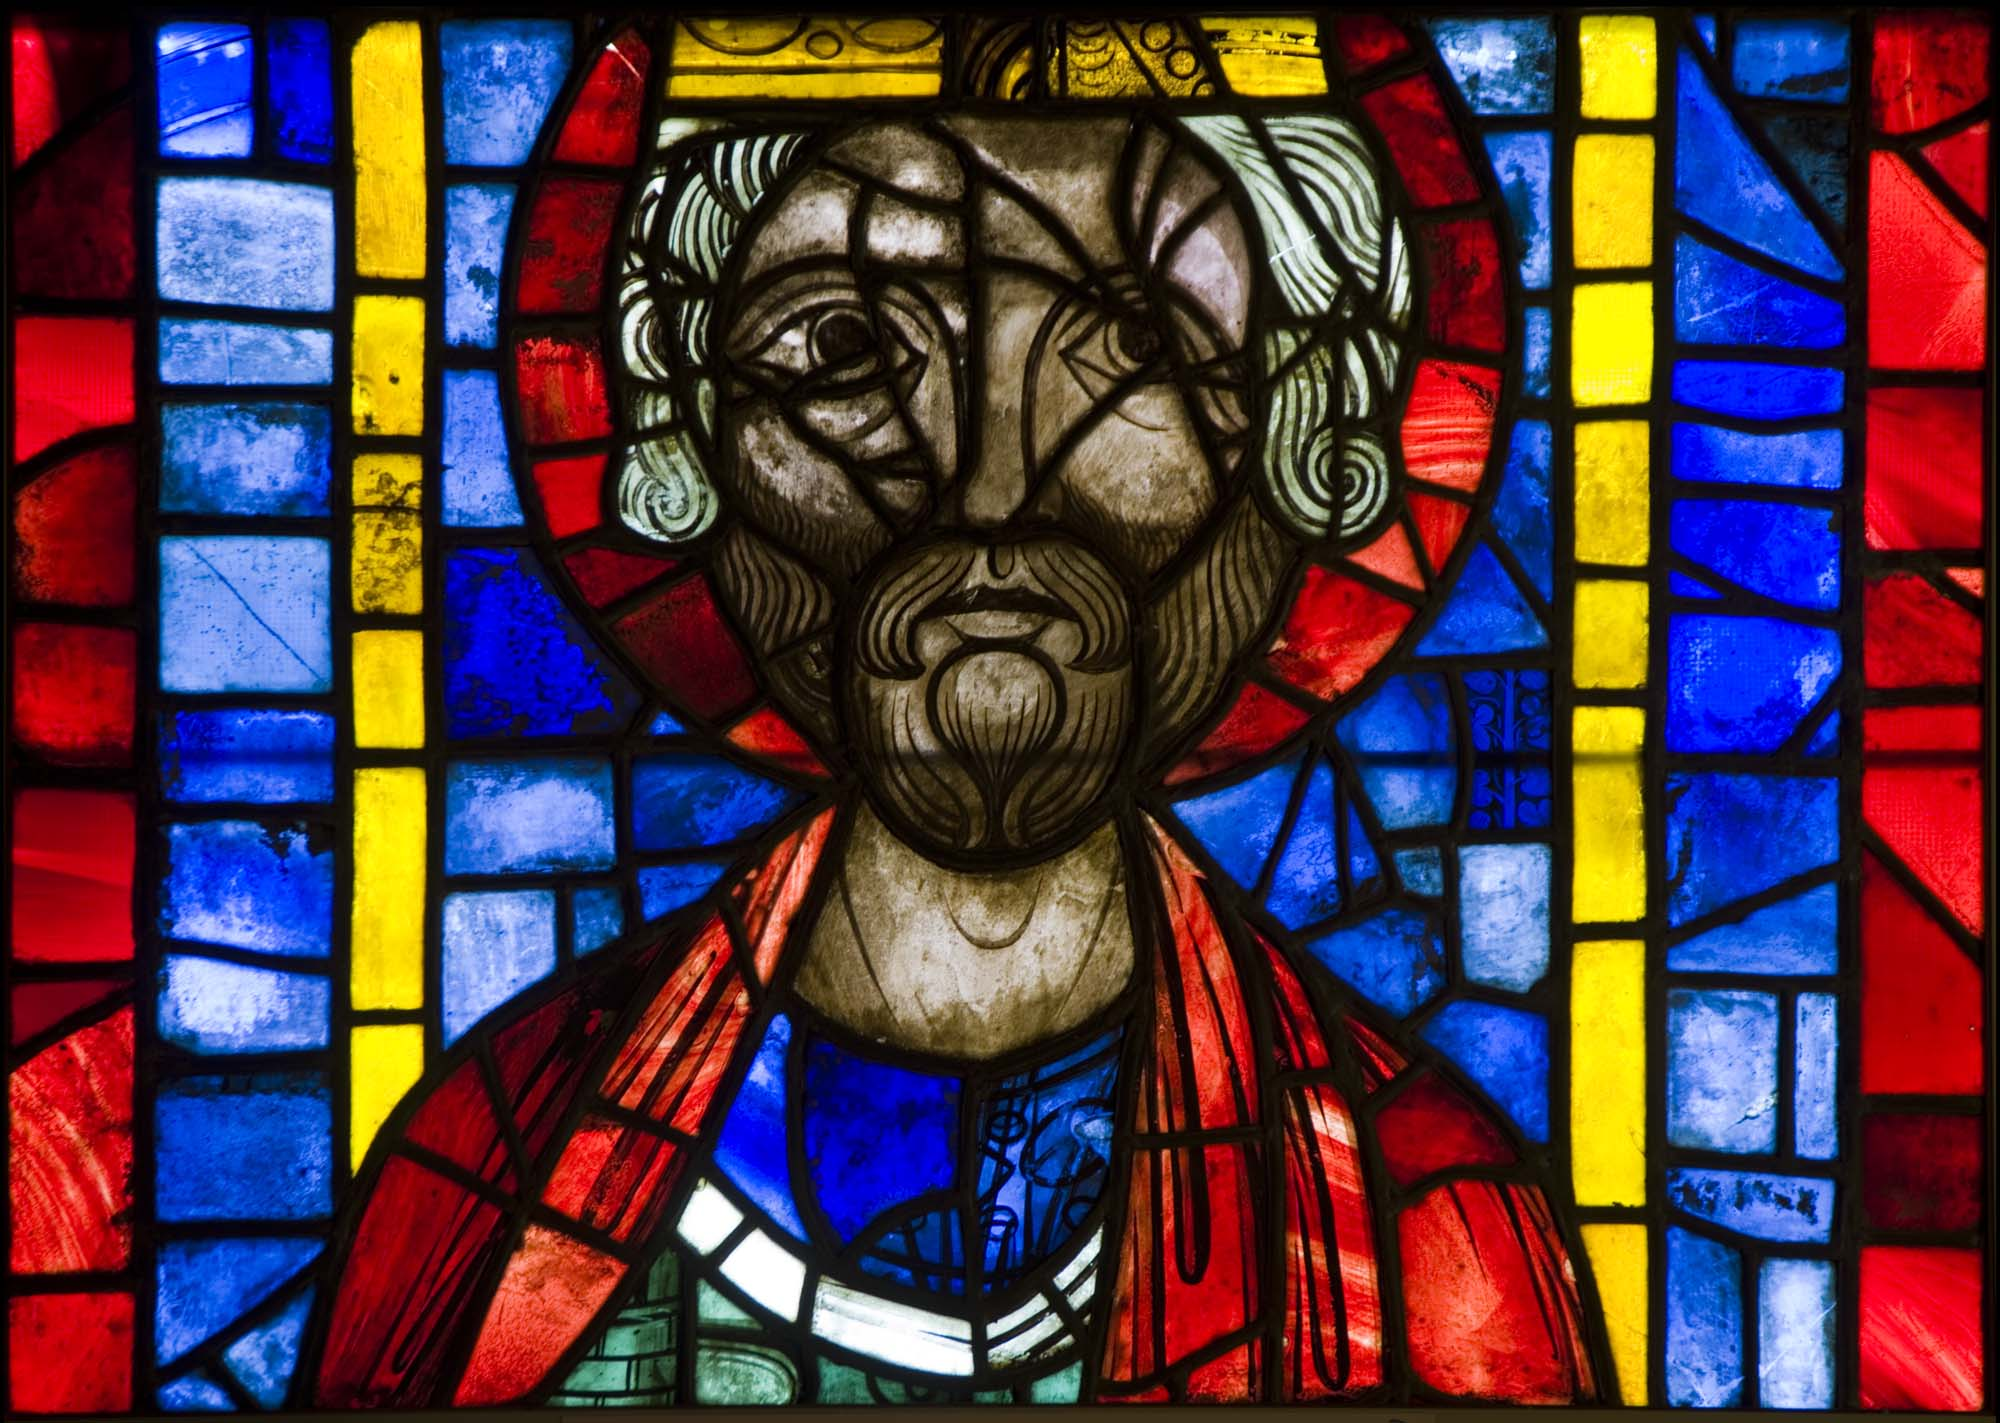 a stained glass window showing a medieval king